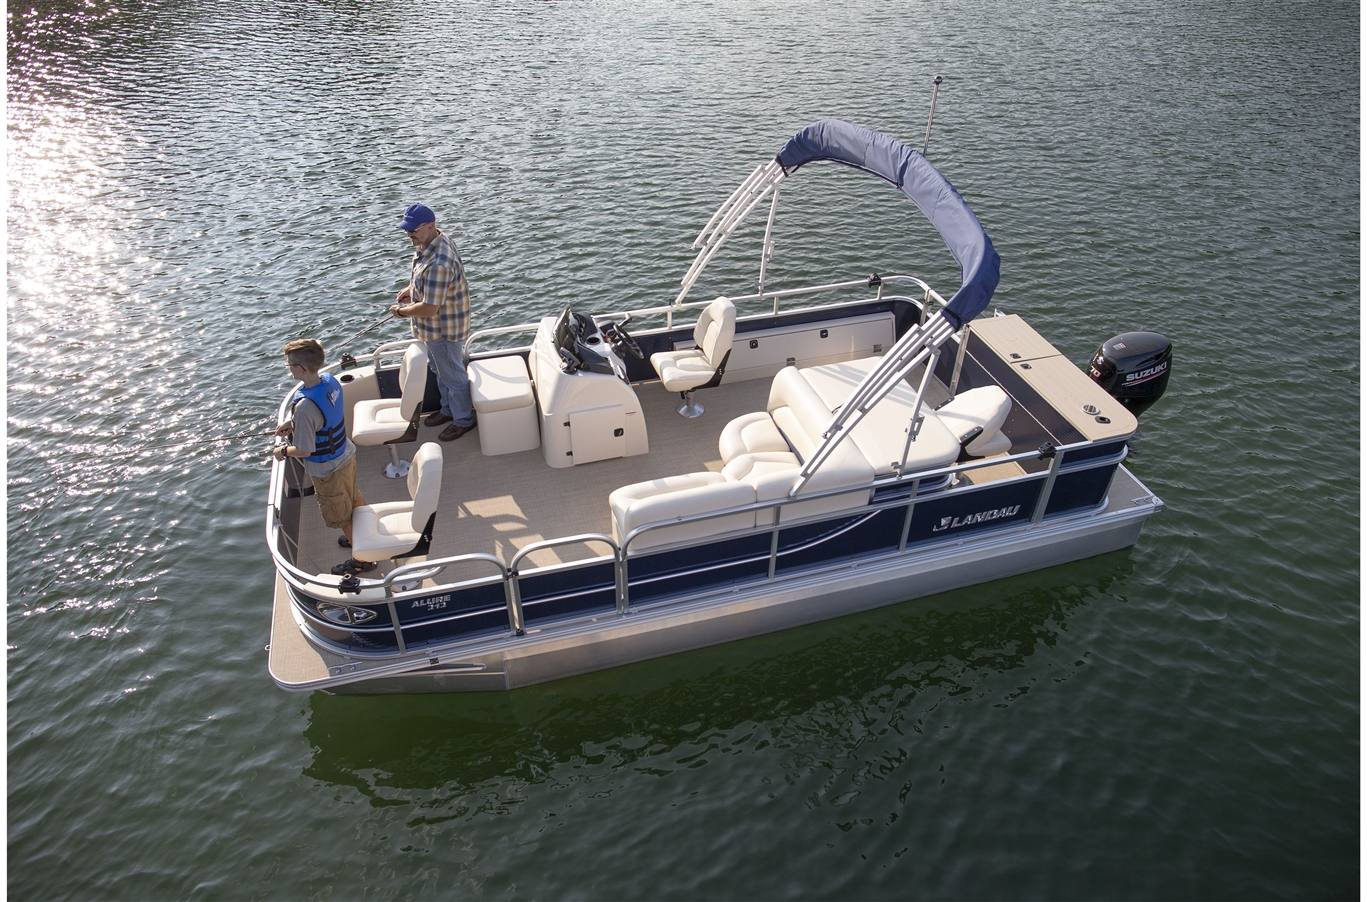 2020 Landau 212 A'Lure Fishing for sale in Wisconsin Dells, WI. Holiday  Shores Marina Wisconsin Dells, WI (608) 254-7777Holiday Shores Marina